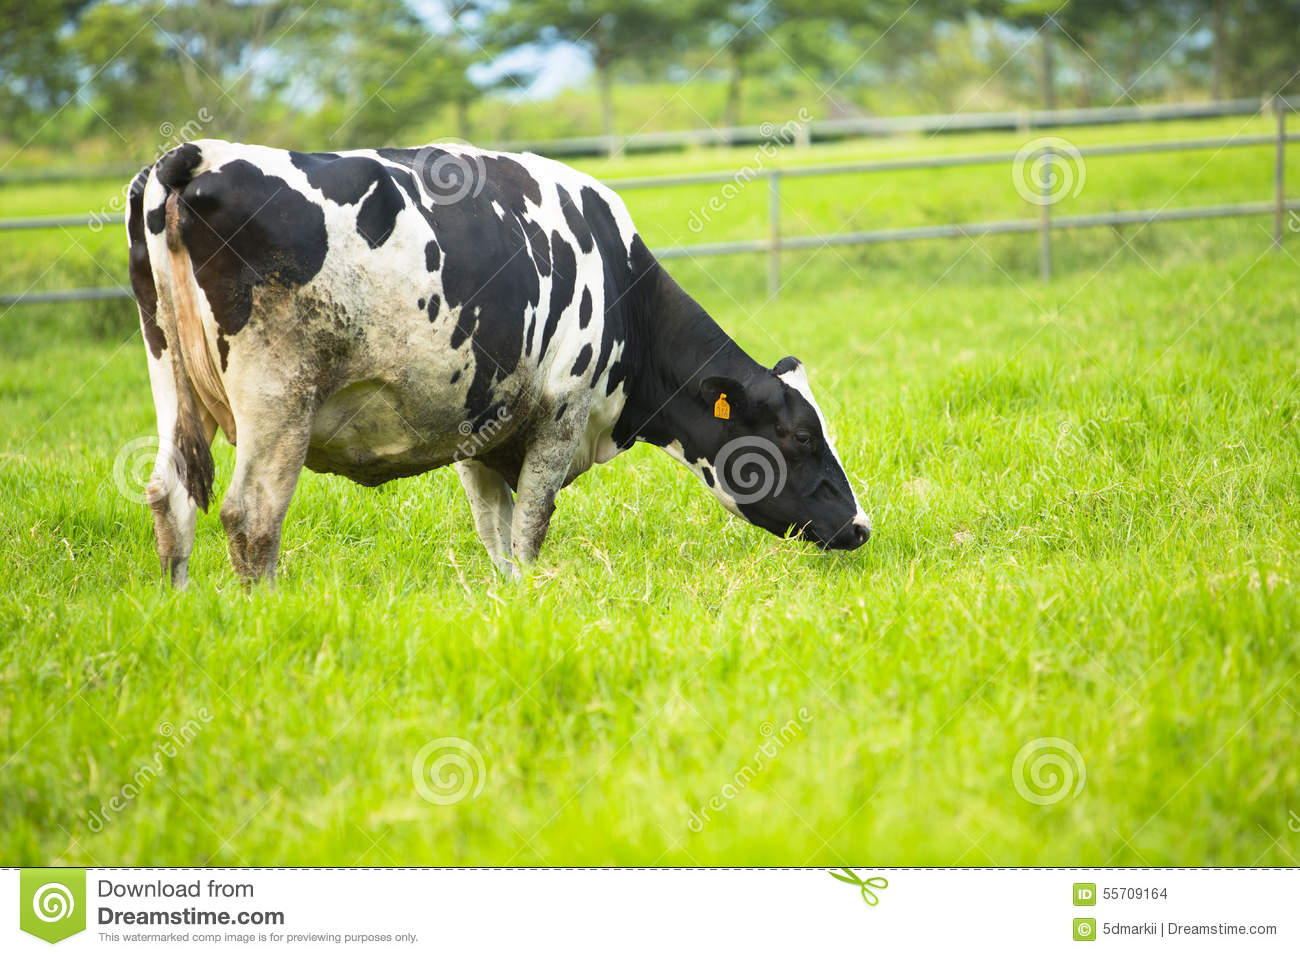 Cow Eating Grass In Farm Land Stock Photo Image 55709164